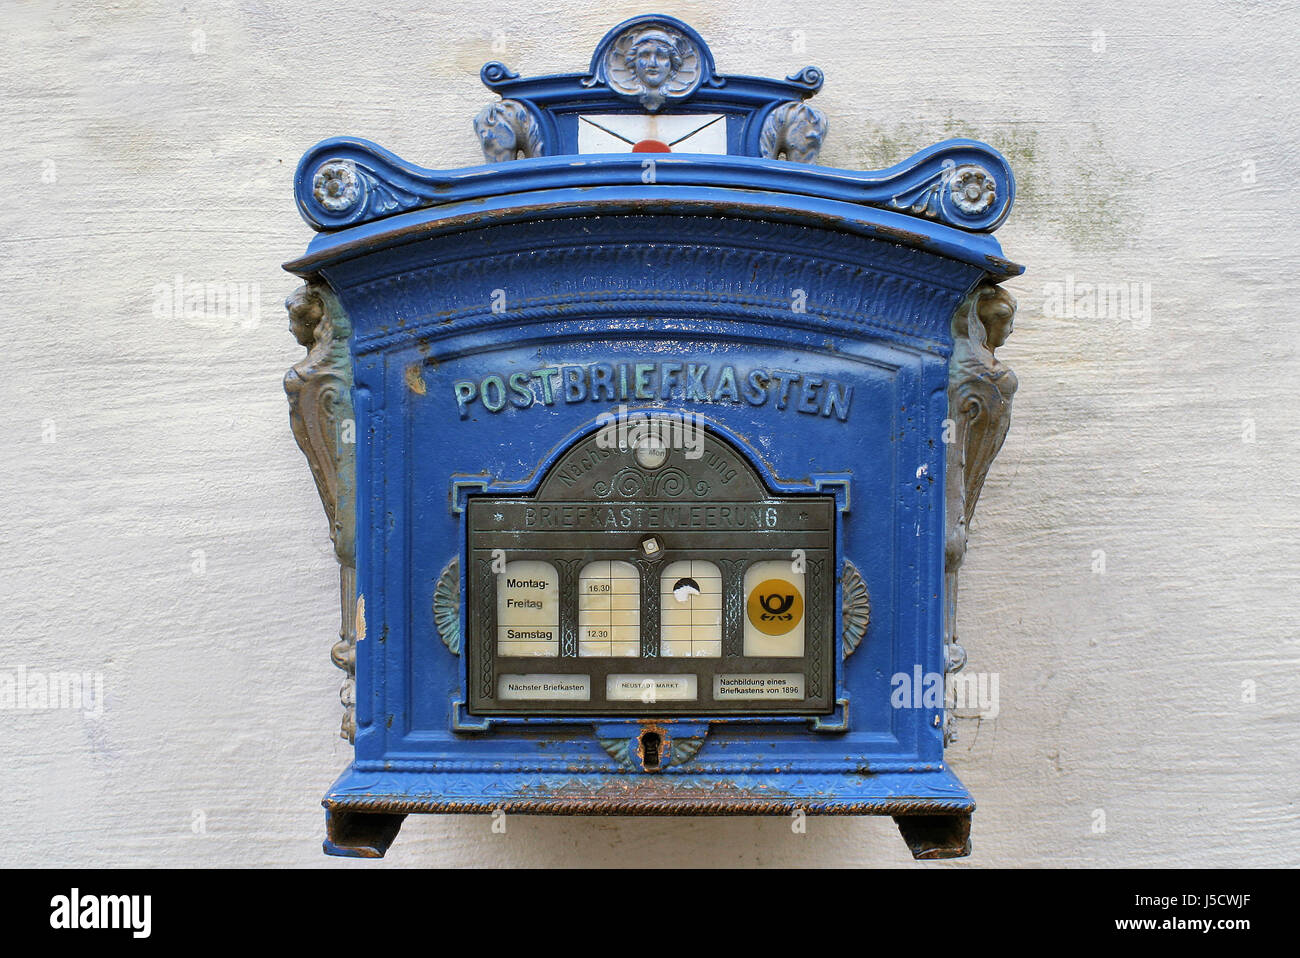 Historical Antique Mailbox Letter Mail Mailboxes Post 455 Depesche Stock Photo Alamy